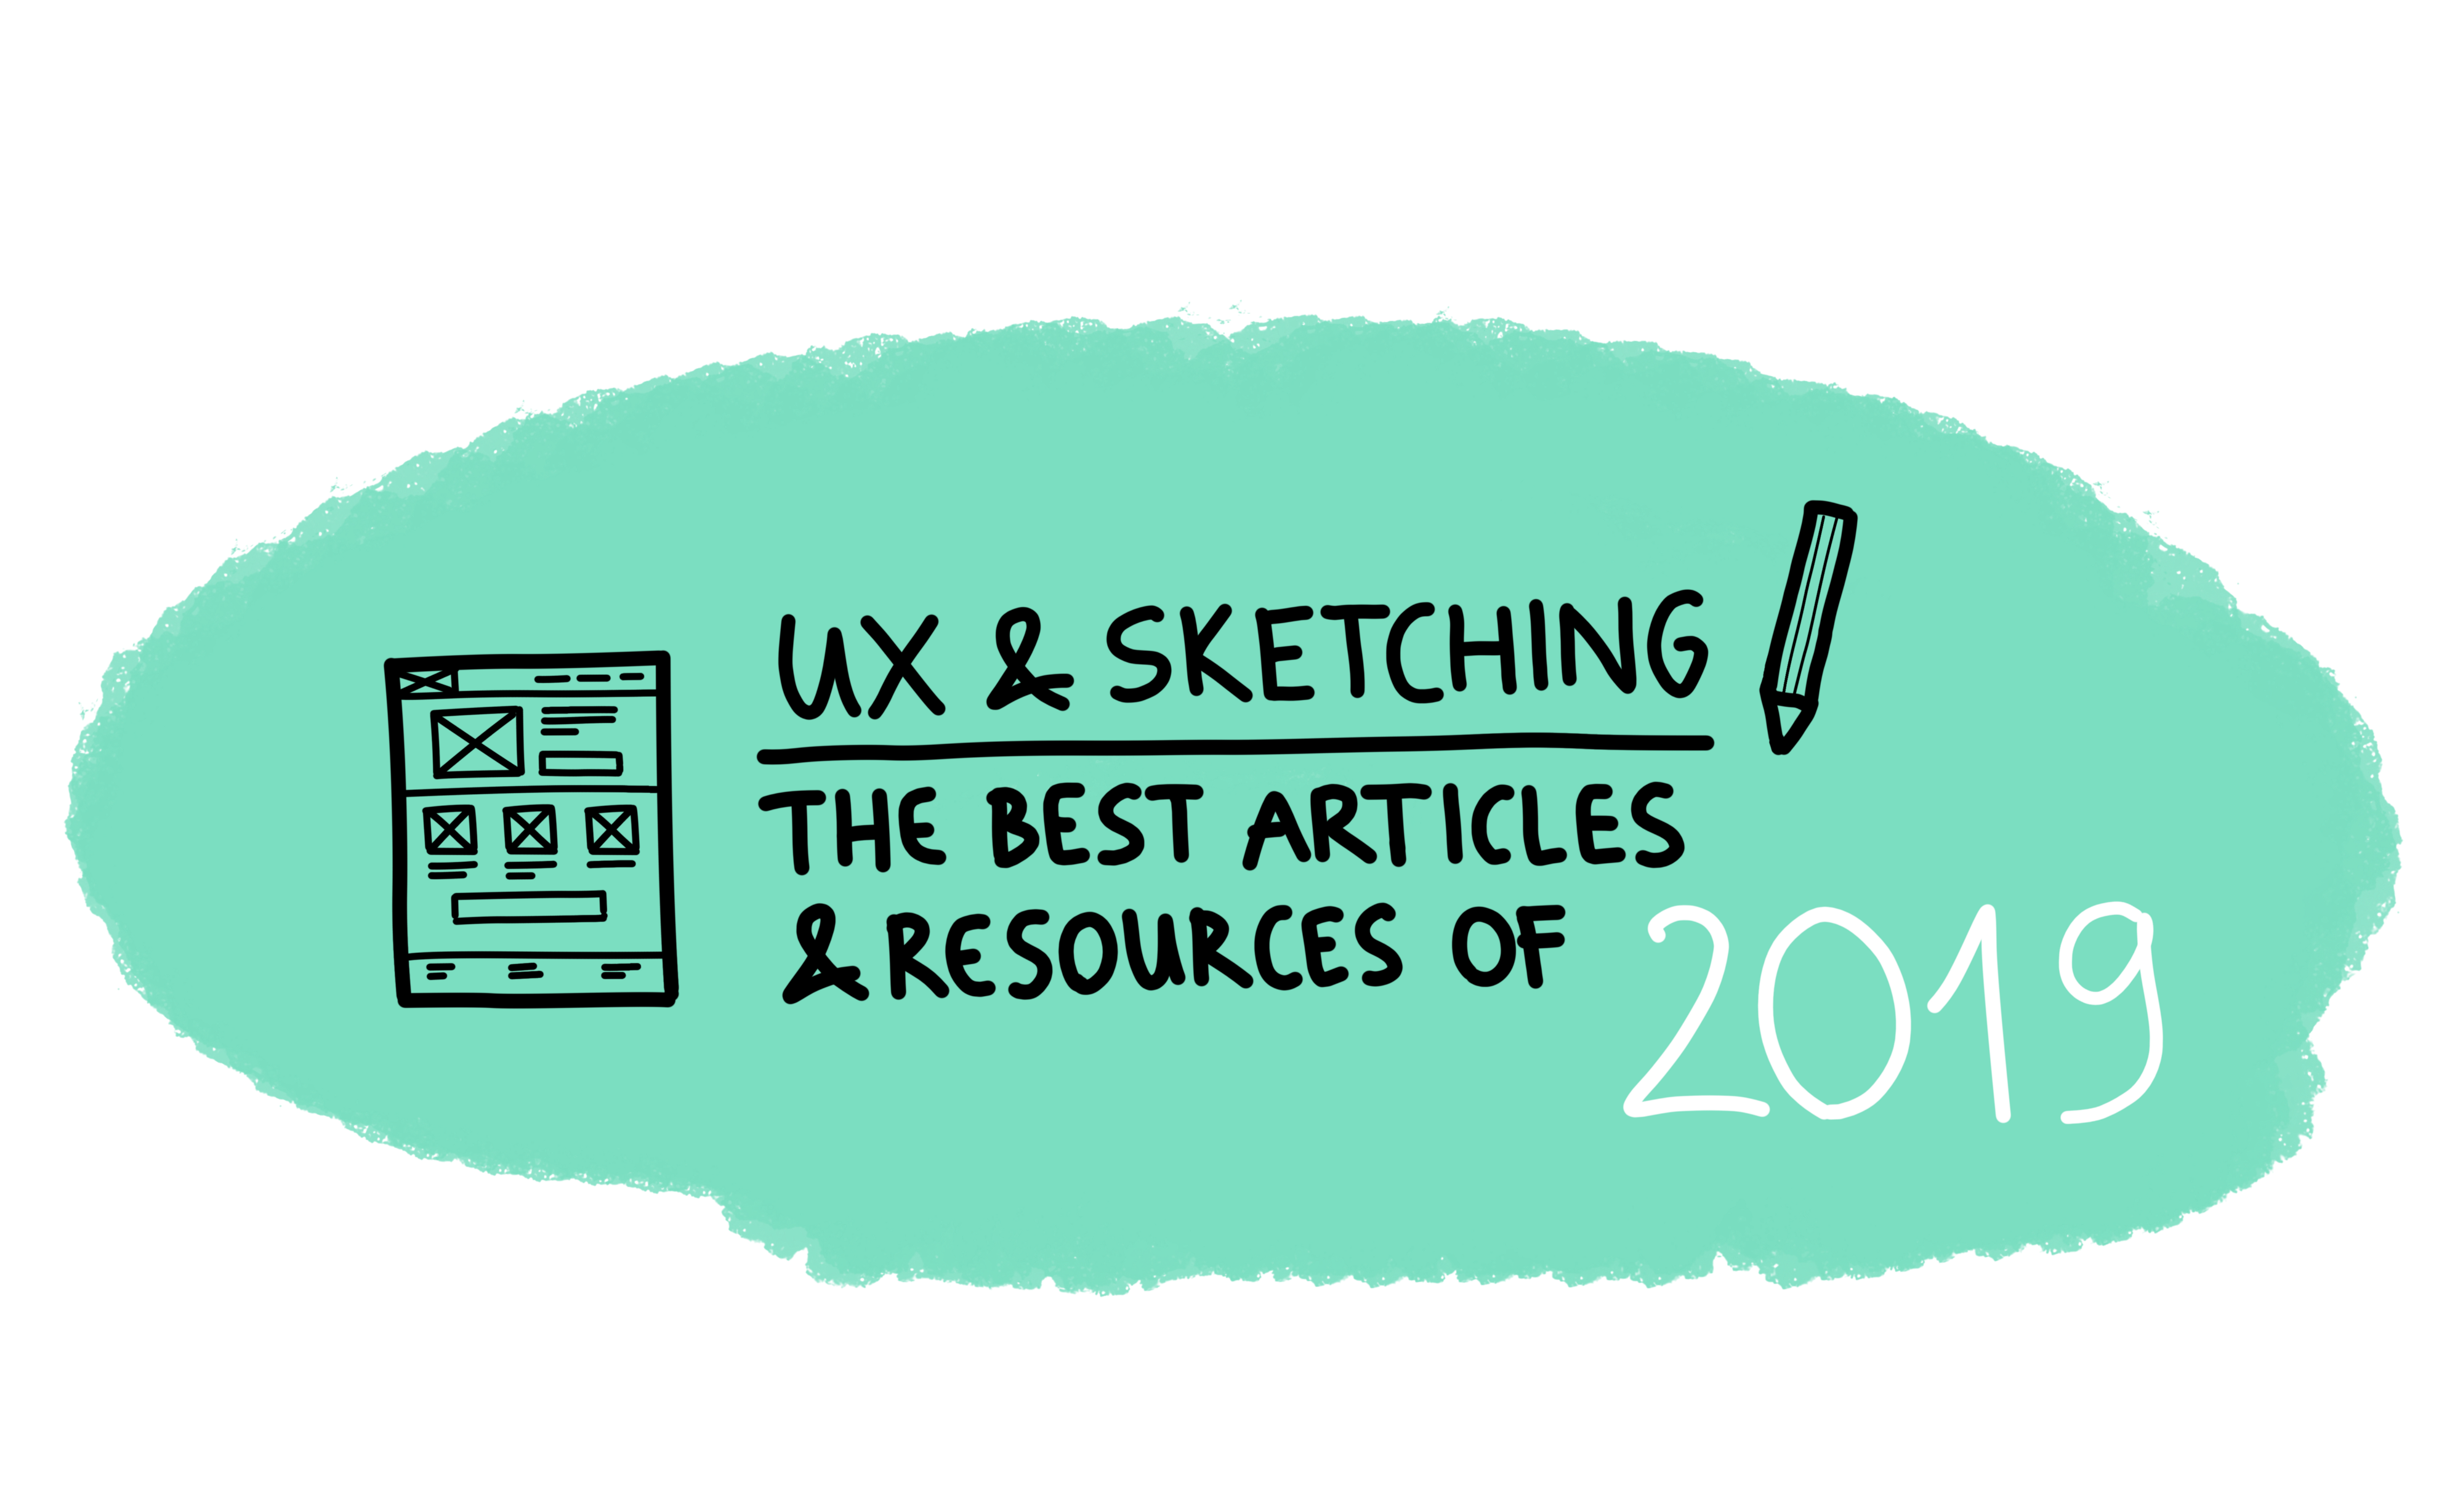 Resources For Designers Looking To Sketch More In 2020 By Krisztina Szerovay Ux Collective